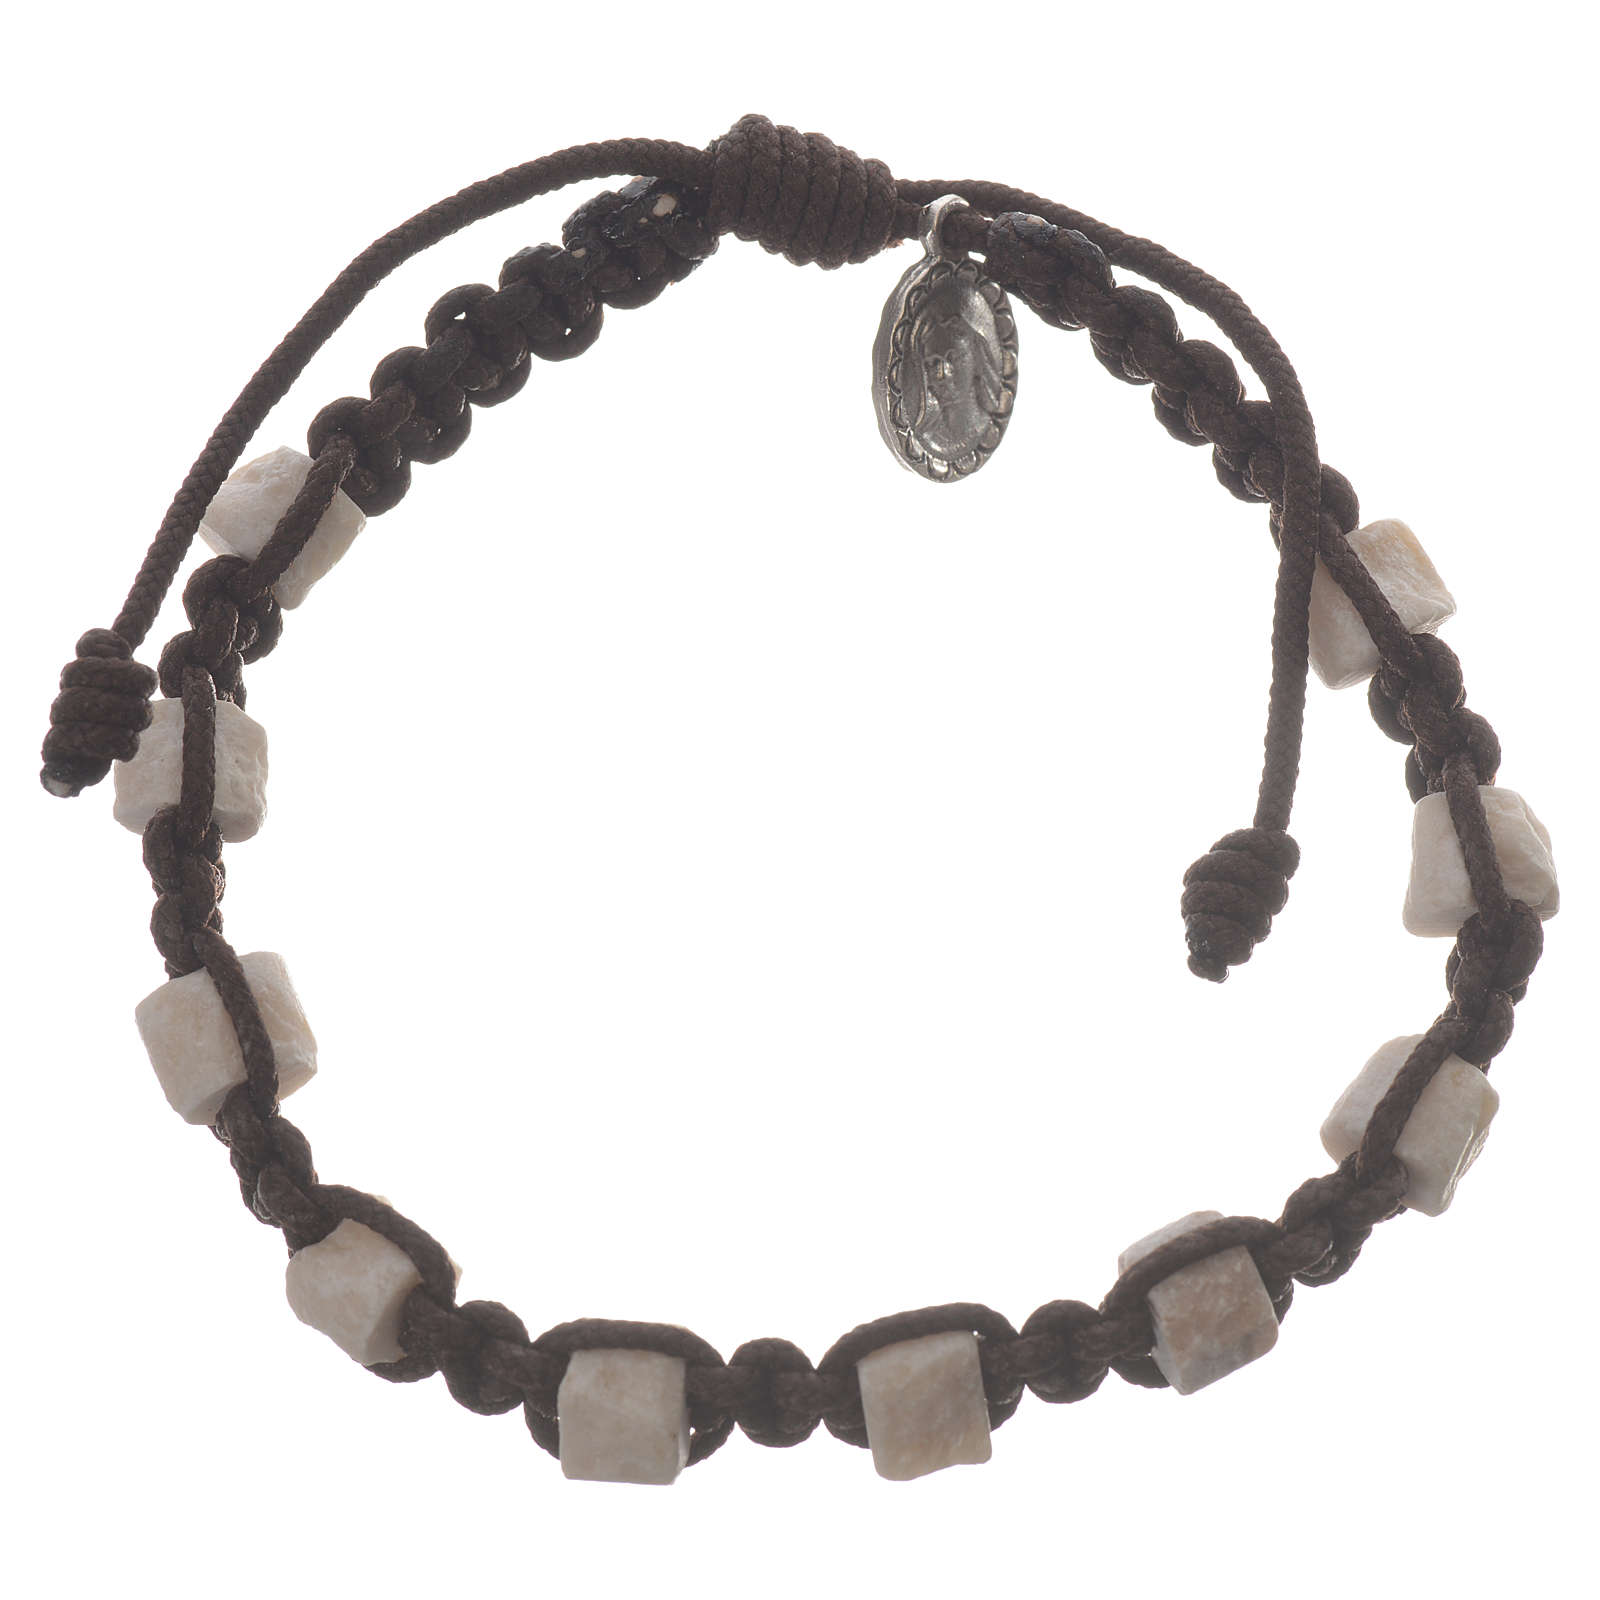 Single decade Medjugorje bracelet with brown cord and stone grains 4